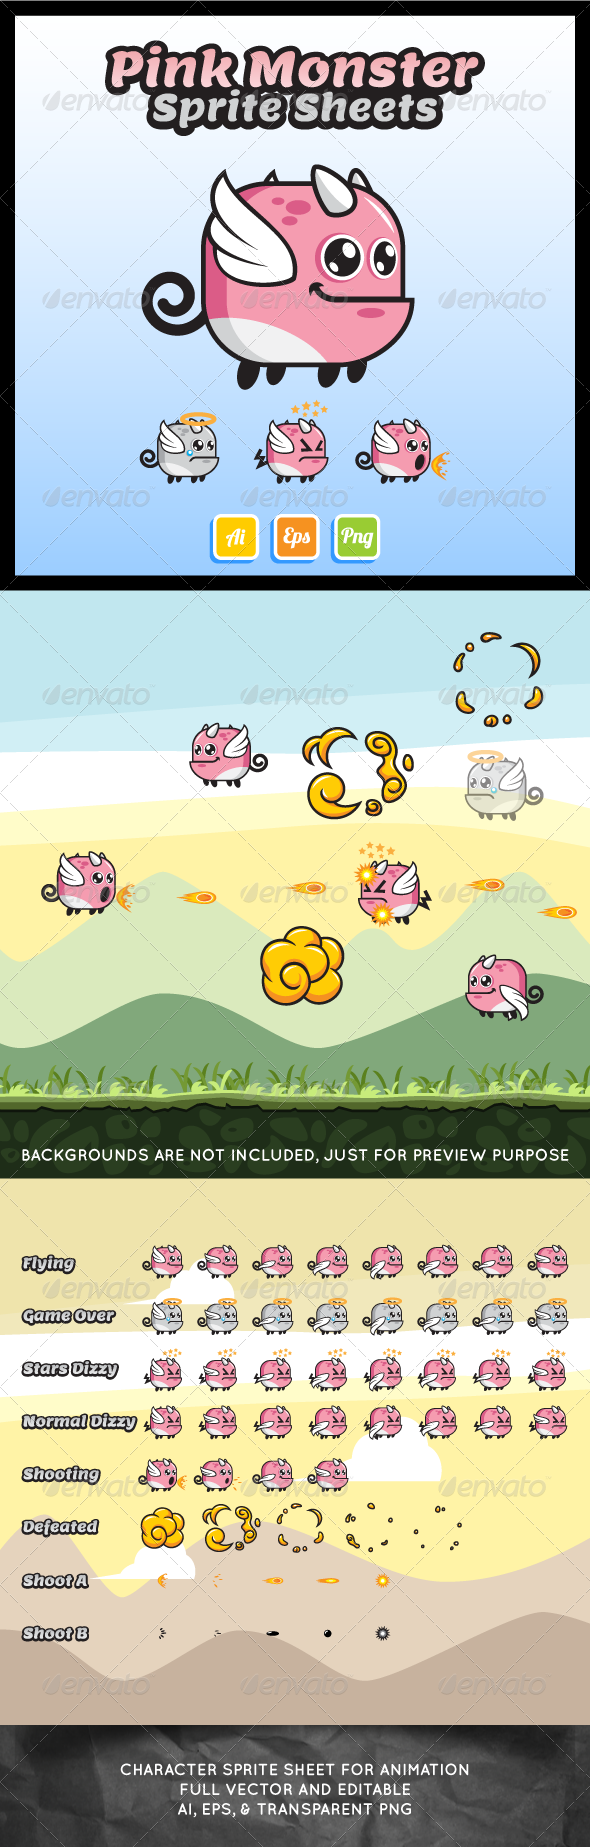 GraphicRiver Pink Monster Sprite Sheet 7403550